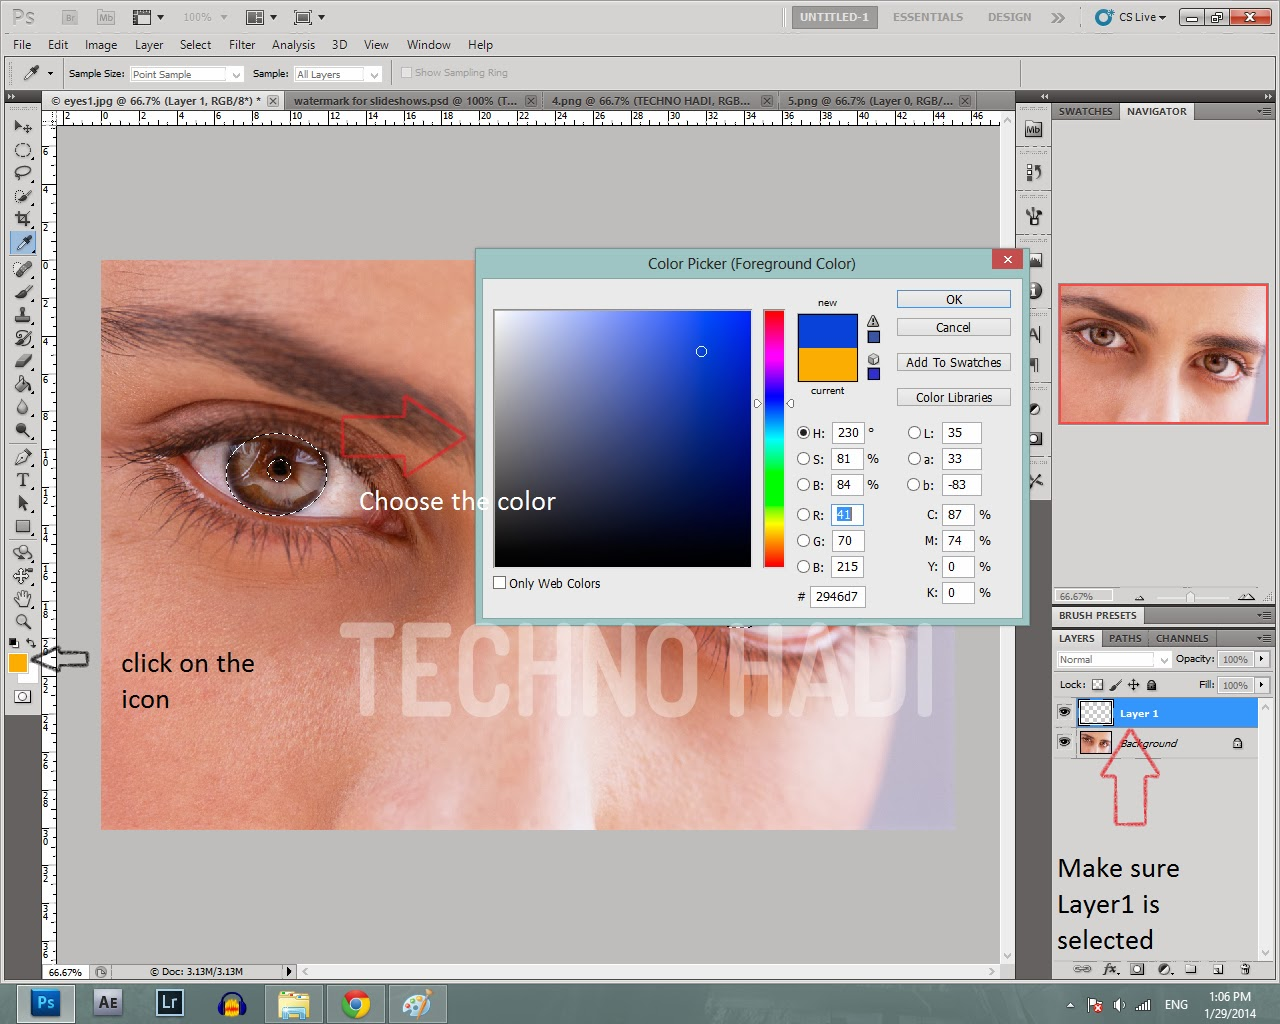 introduction about adobe photoshop tools